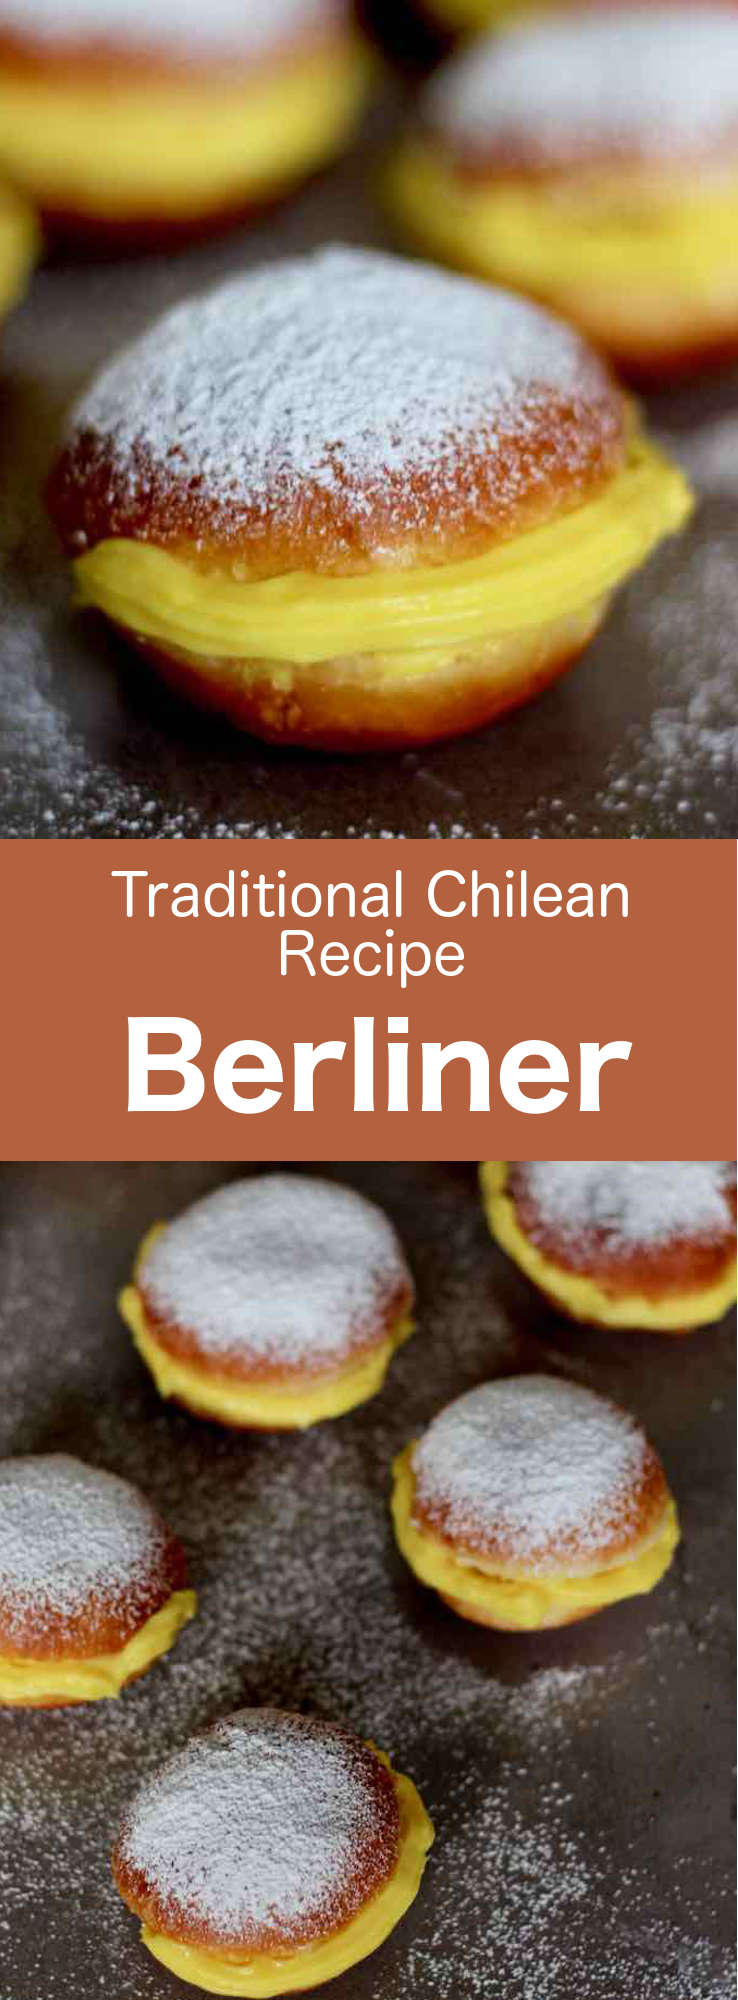 Berliner are donuts of Austro-German origin traditionally filled with custard, that are very popular in Chile and other Latin American countries. #Chile #ChileanCuisine #ChileanRecipe #ChileanFood #WorldCuisine #196flavors